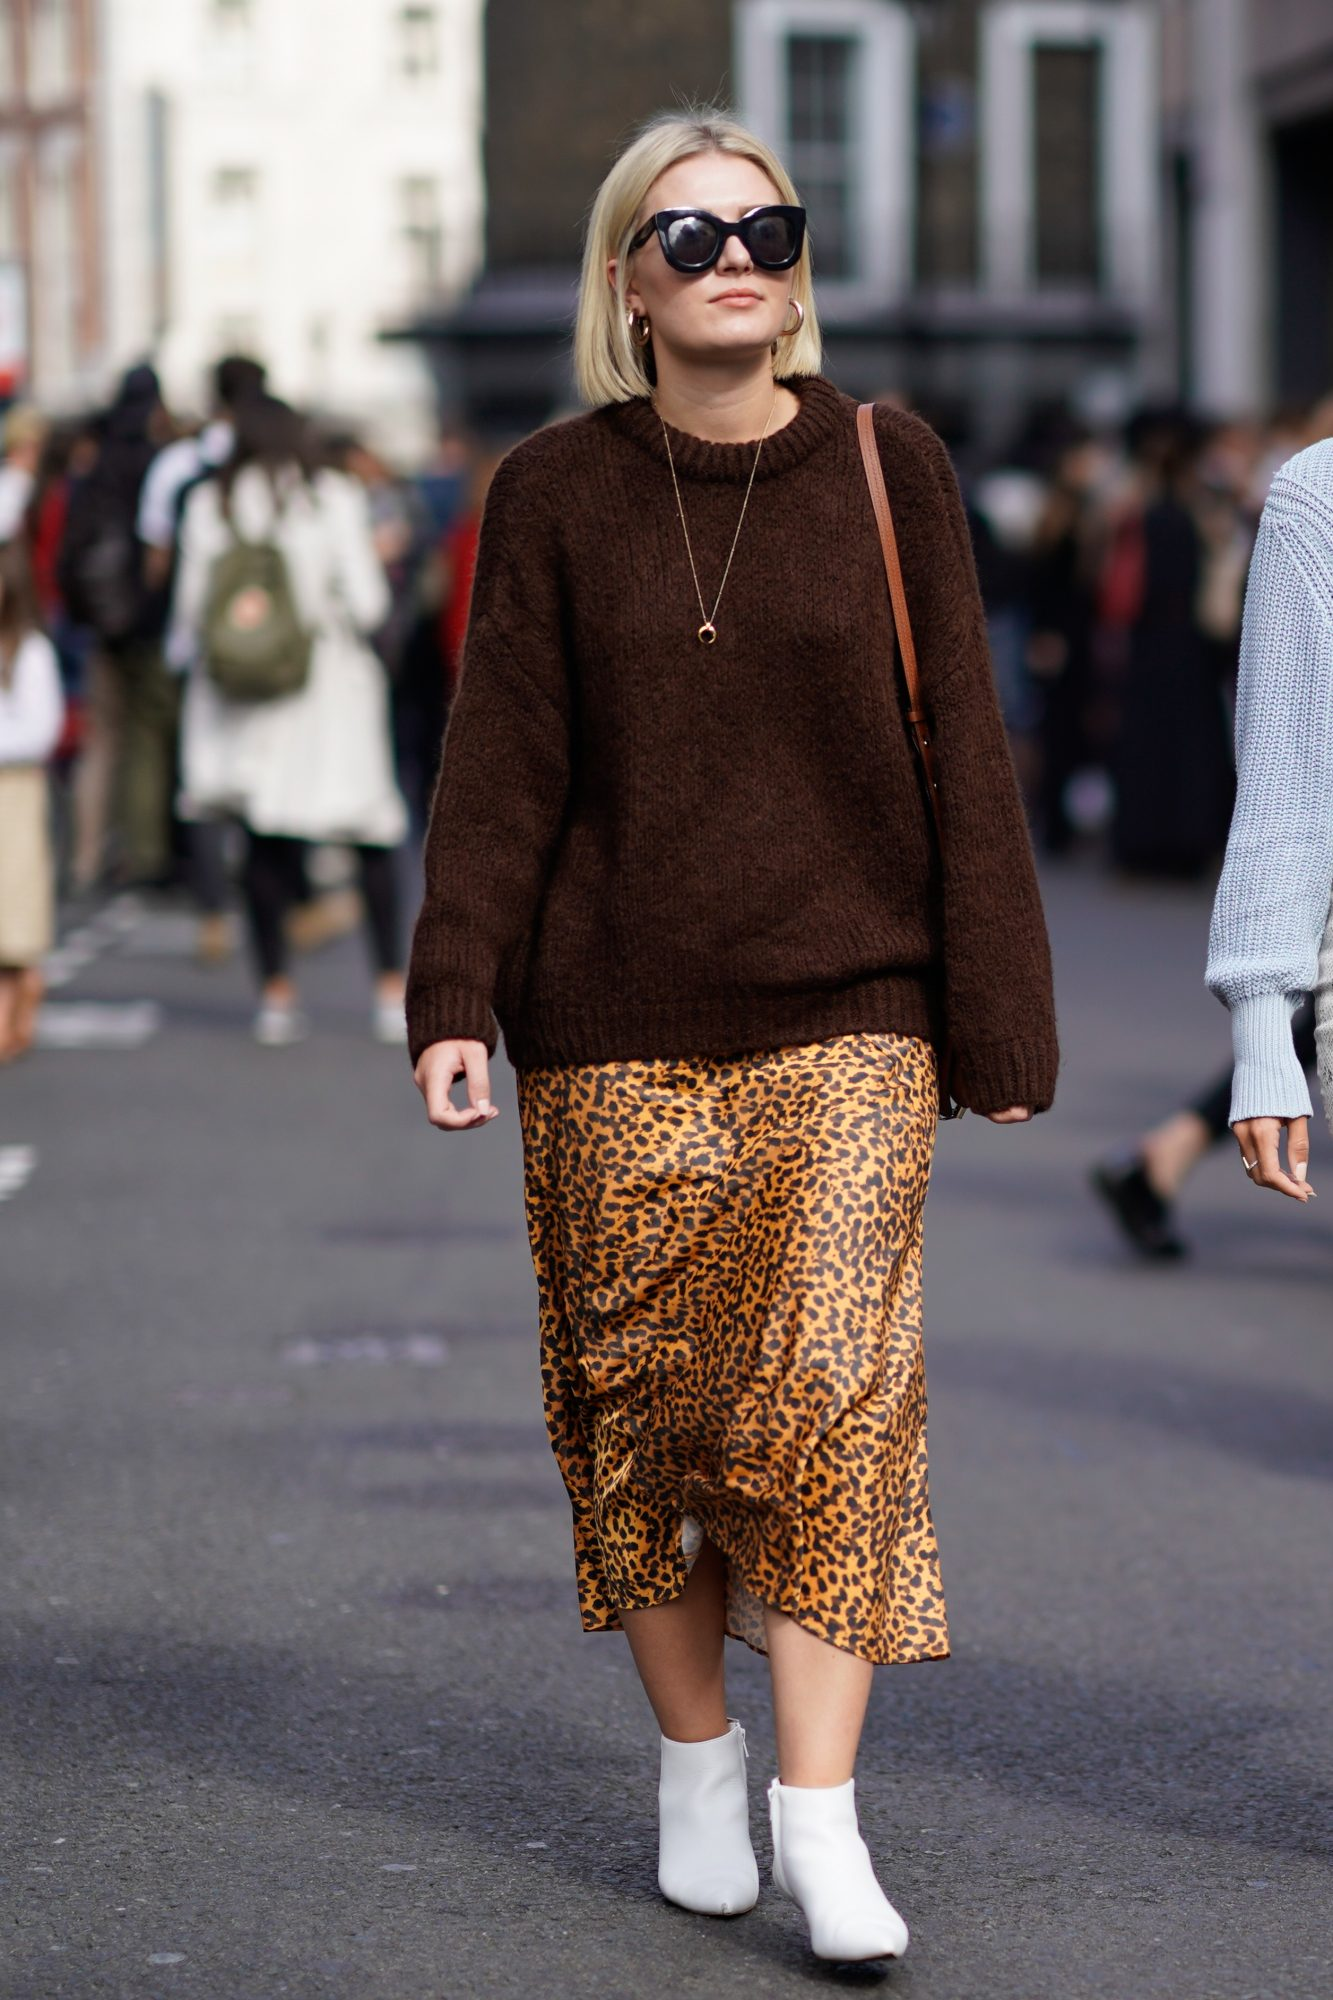 Style Your Skirt With a Cozy Sweater